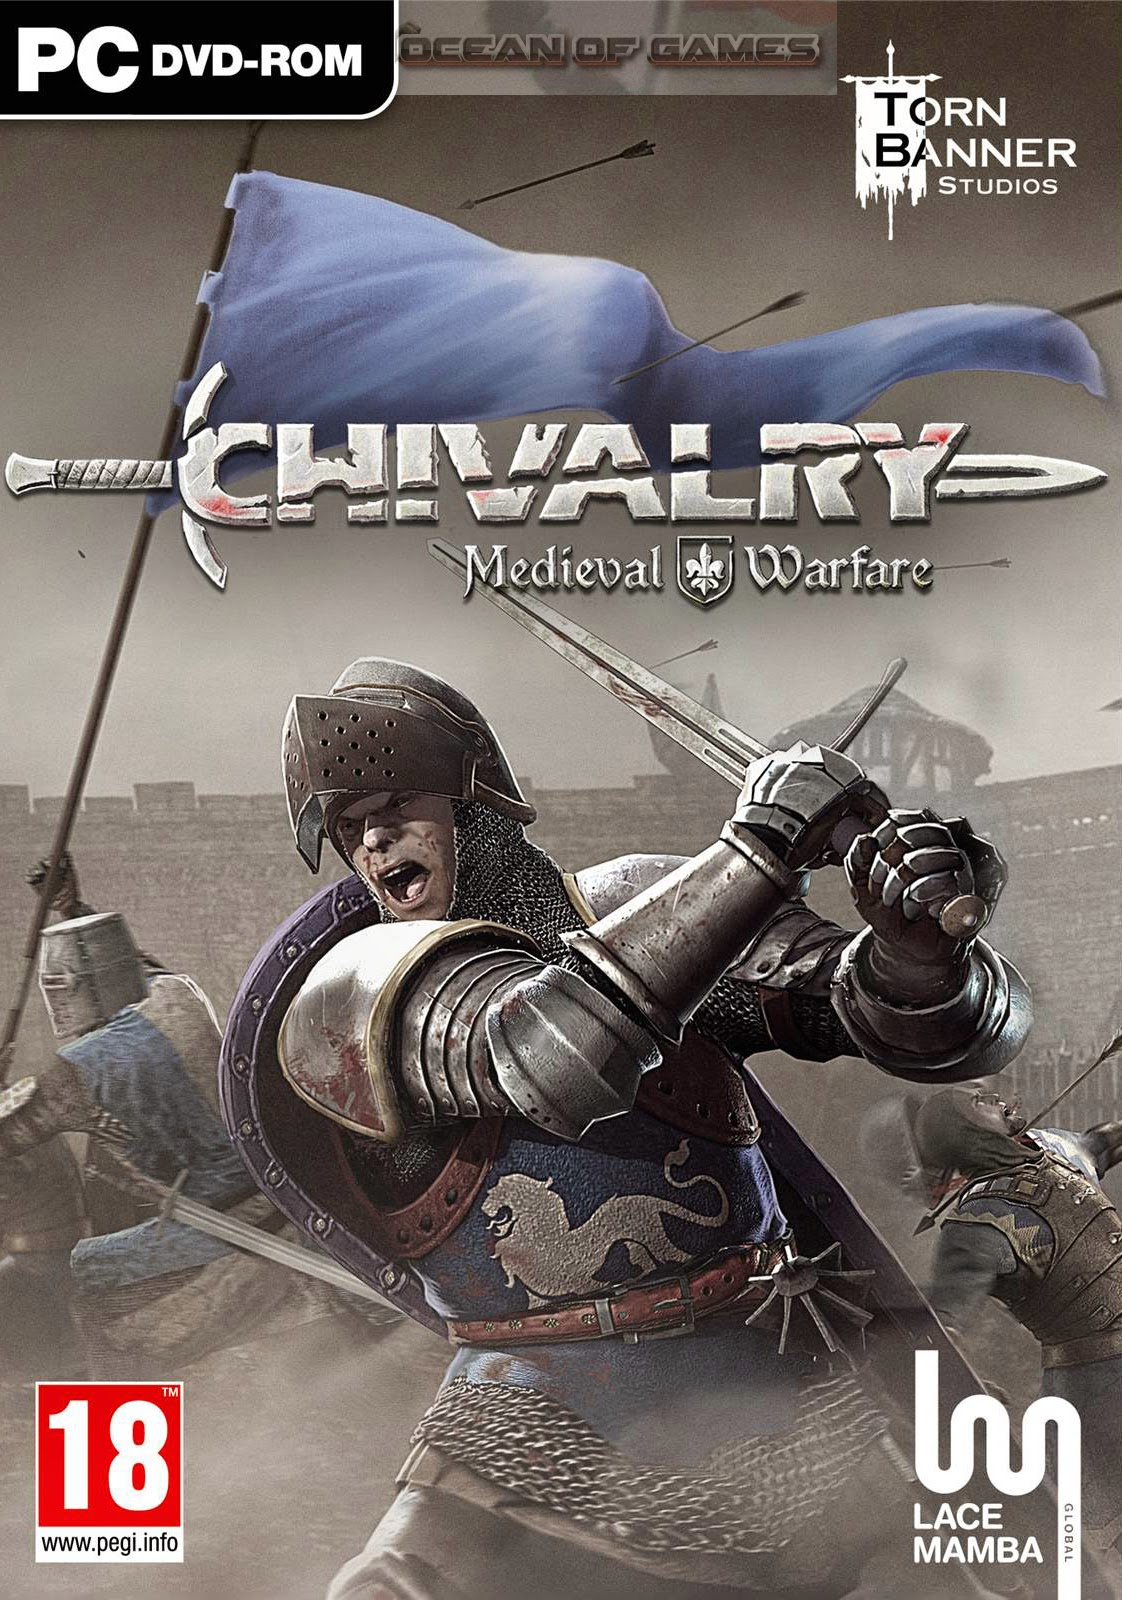 how to play chivalry medieval warfare well